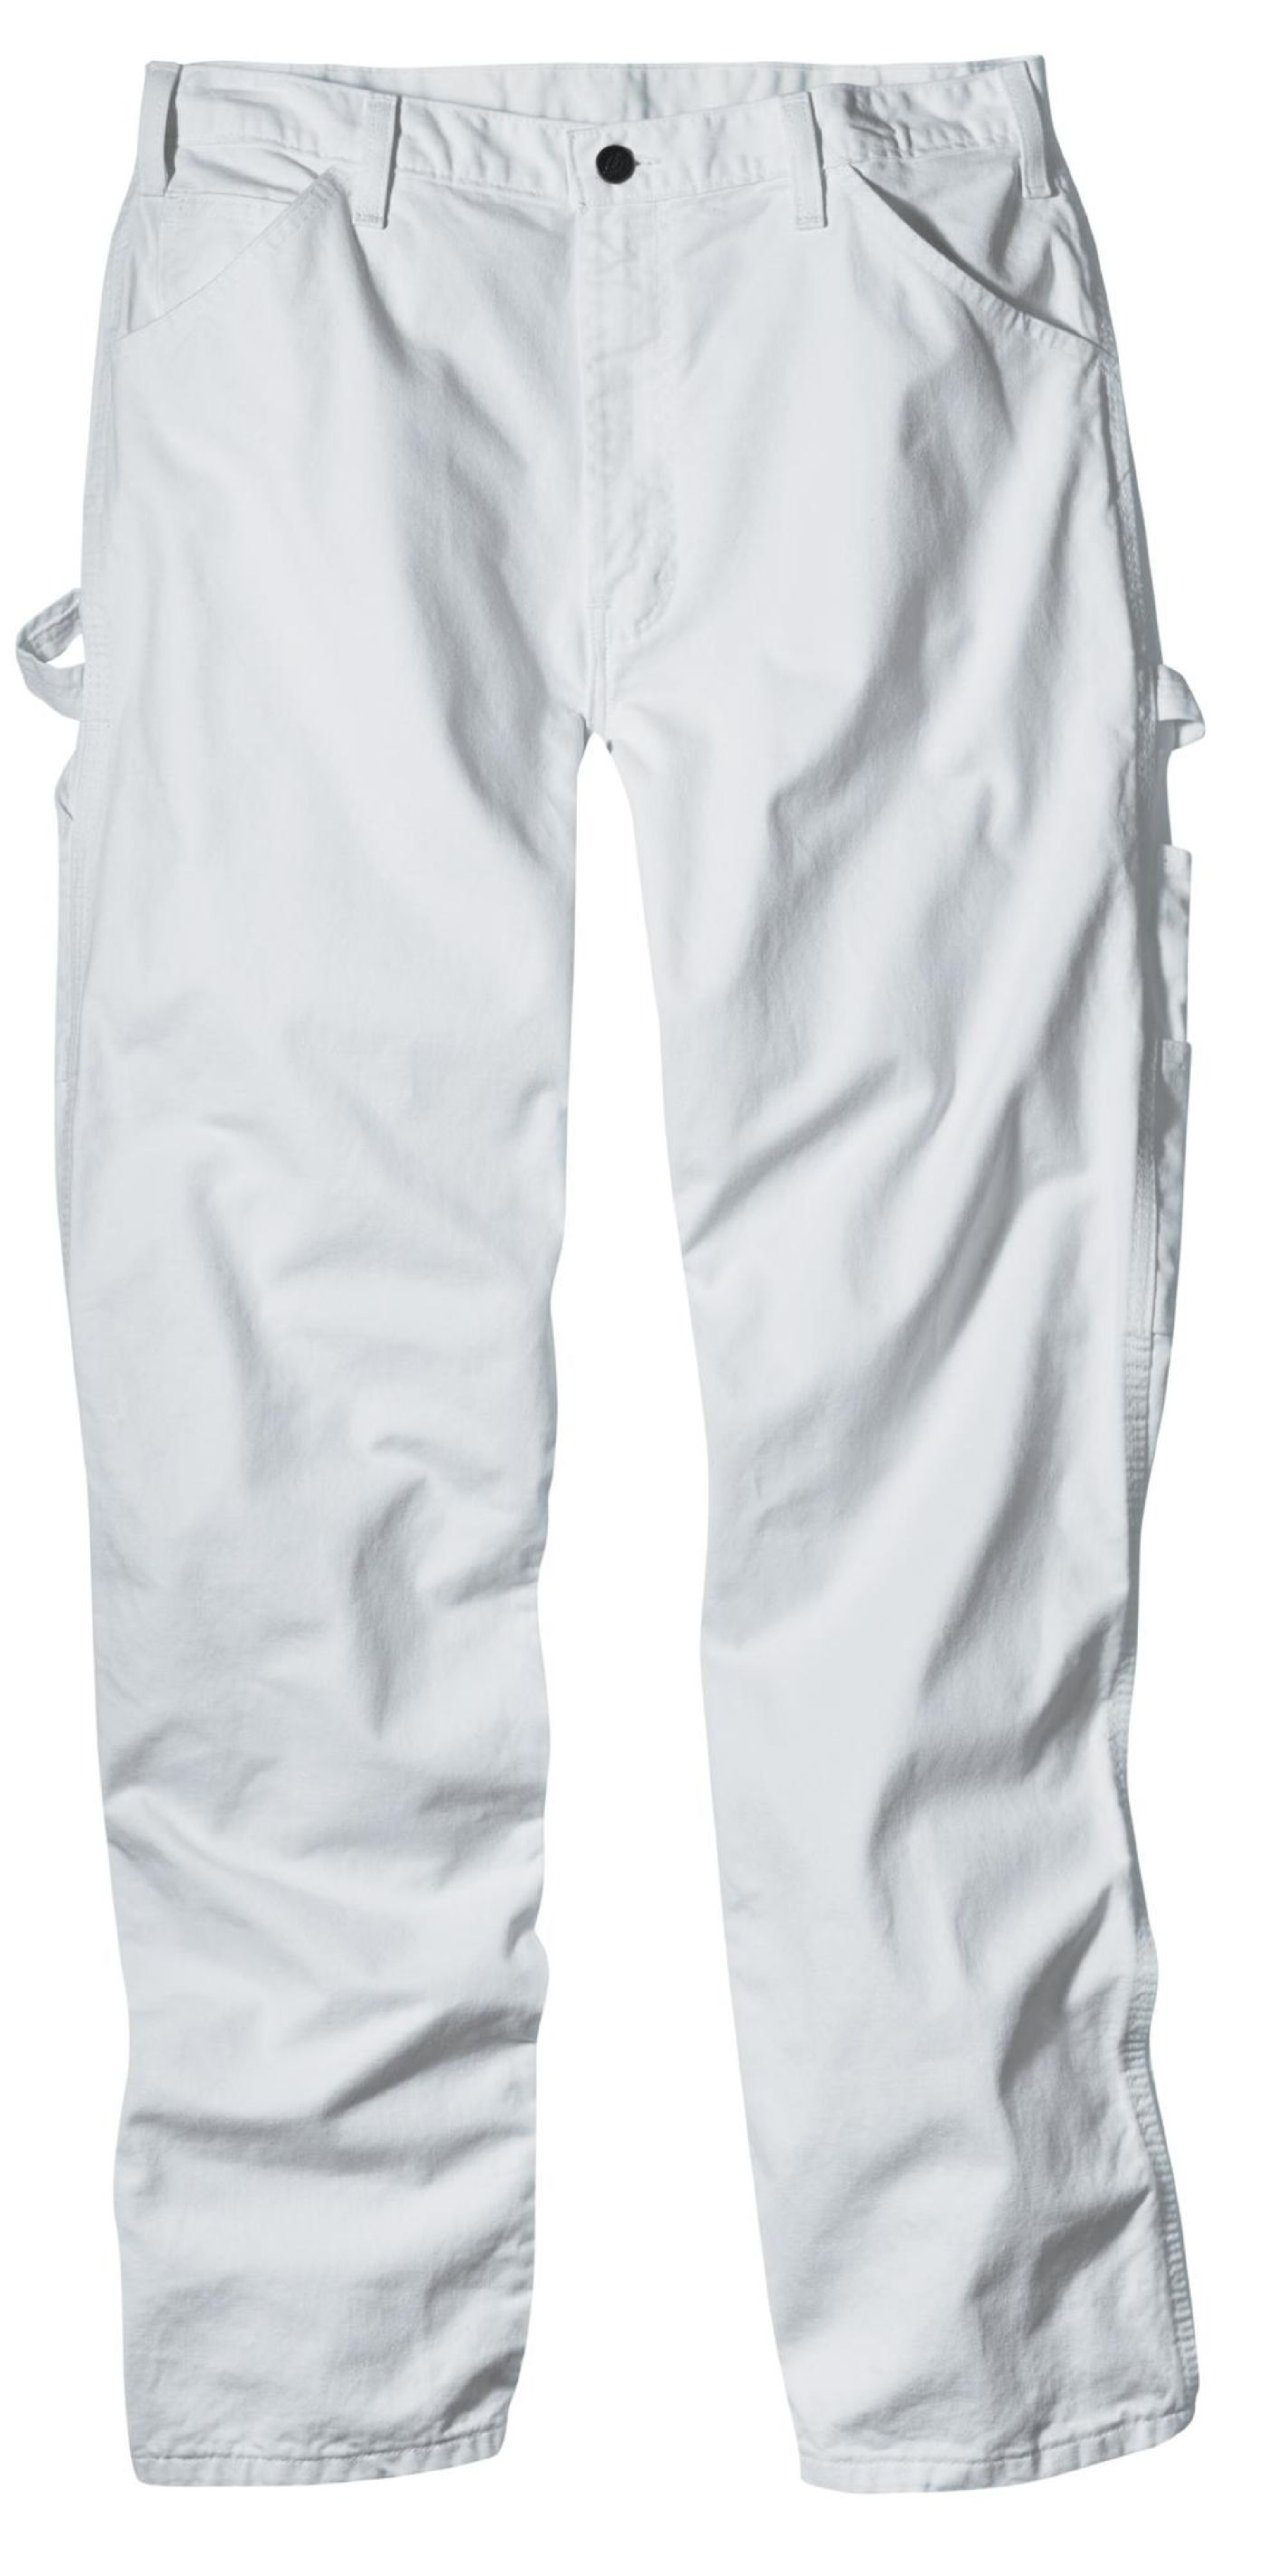 Dickies Industrial Wear 1953 34W by 34L Men's Relaxed Fit Cotton Utility Painters Pants, White